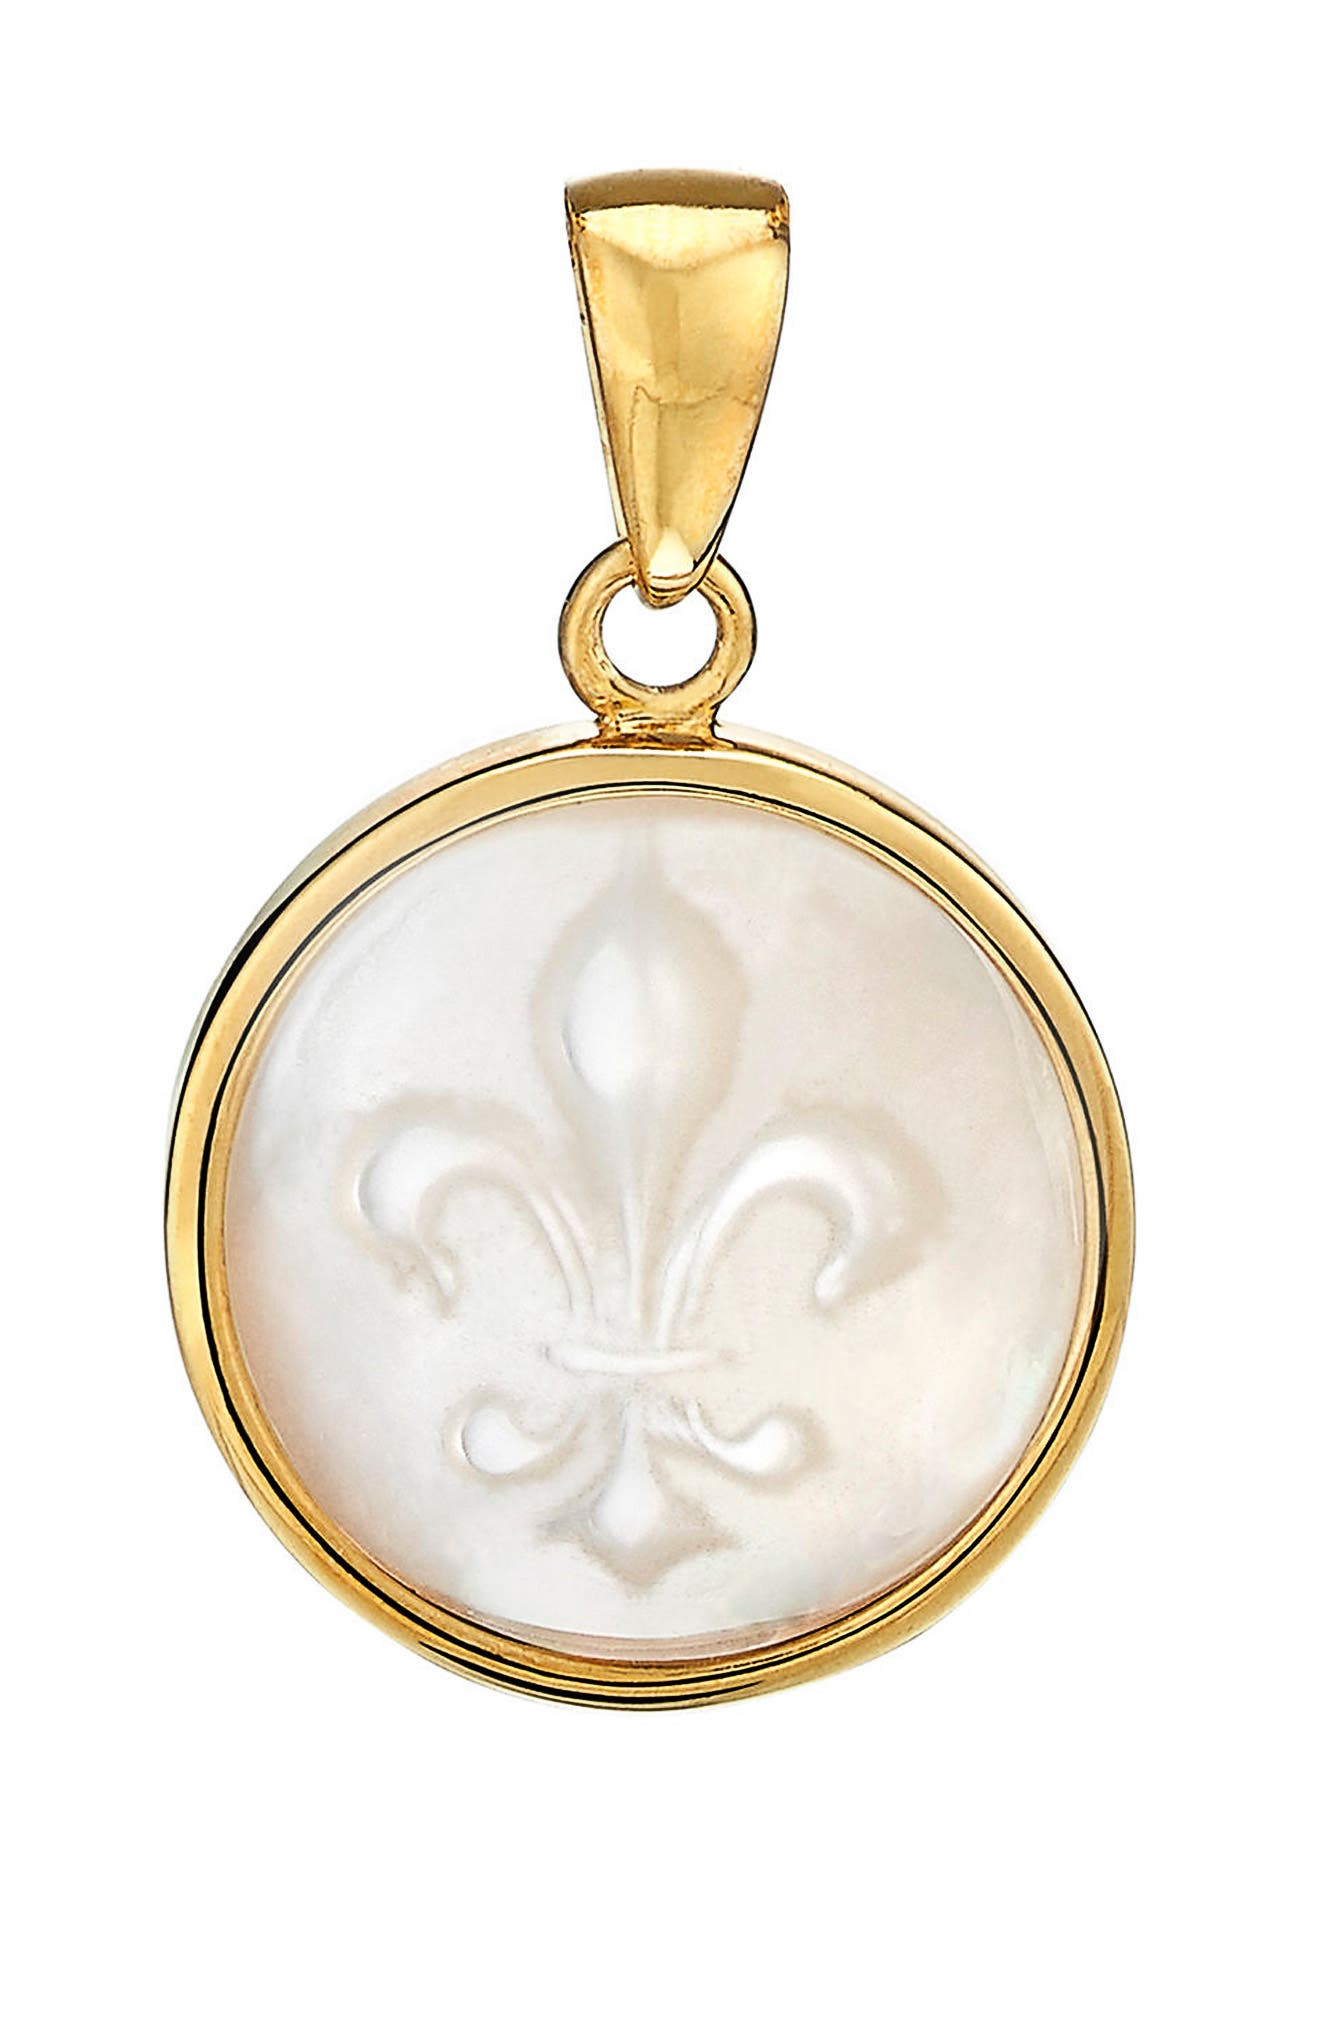 Main Image - ASHA Fleur de Lis Mother-of-Pearl Charm